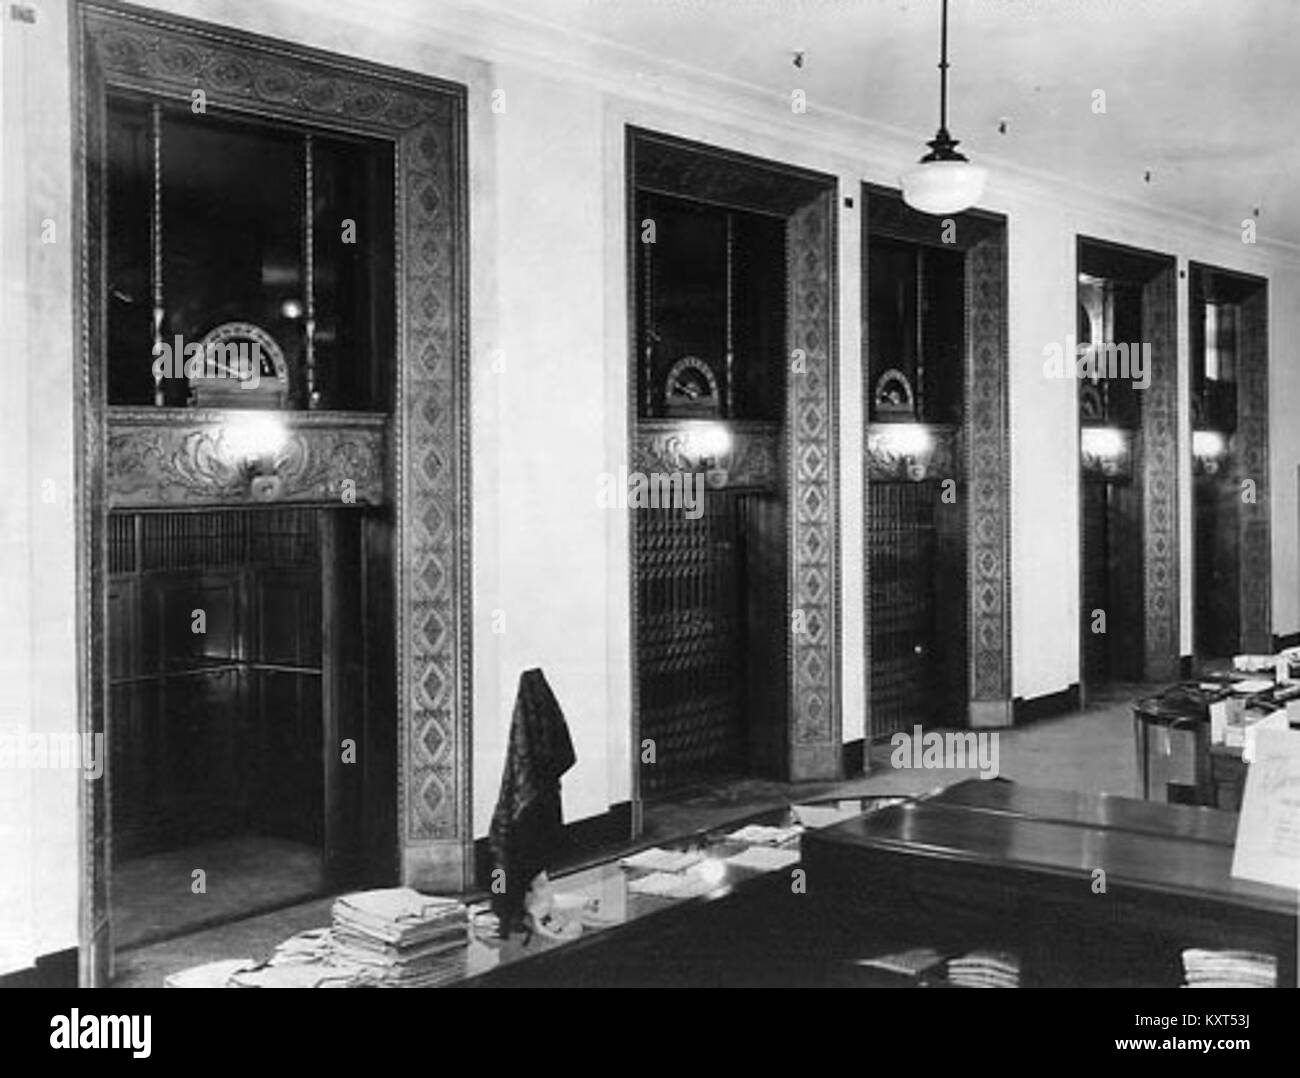 Elevators black and white stock photos images alamy for T s dining virden